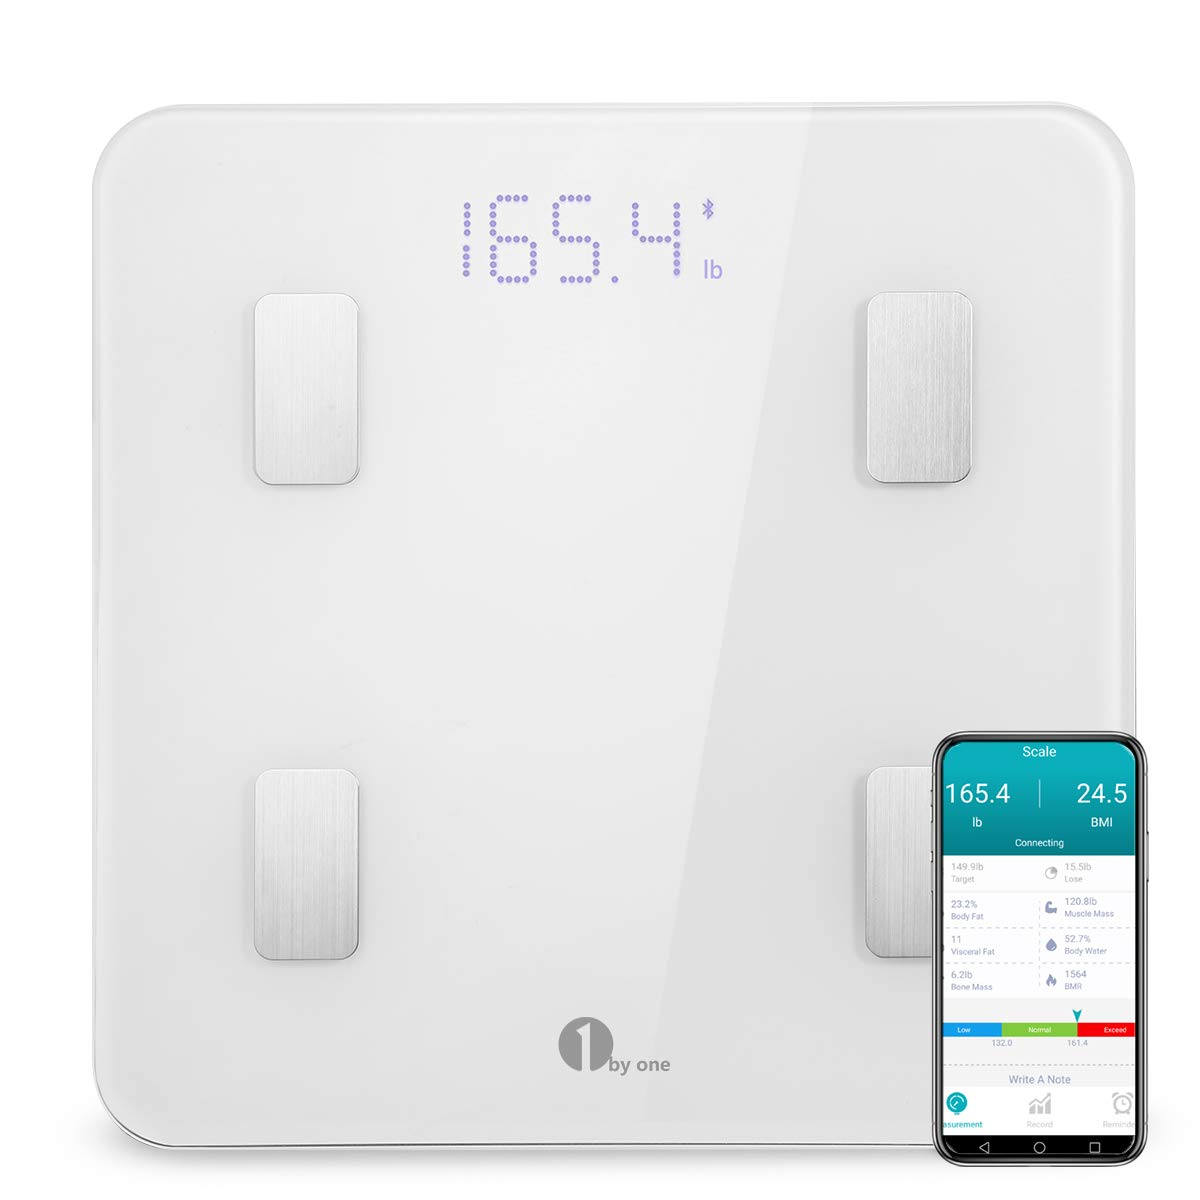 1byone Bluetooth Smart Body Fat Scale Body Composition Analyzer, Bathroom Digital Weight Scale with Smartphone App, Sync Data with Apple Health, Google Fit & Fitbit APP - White